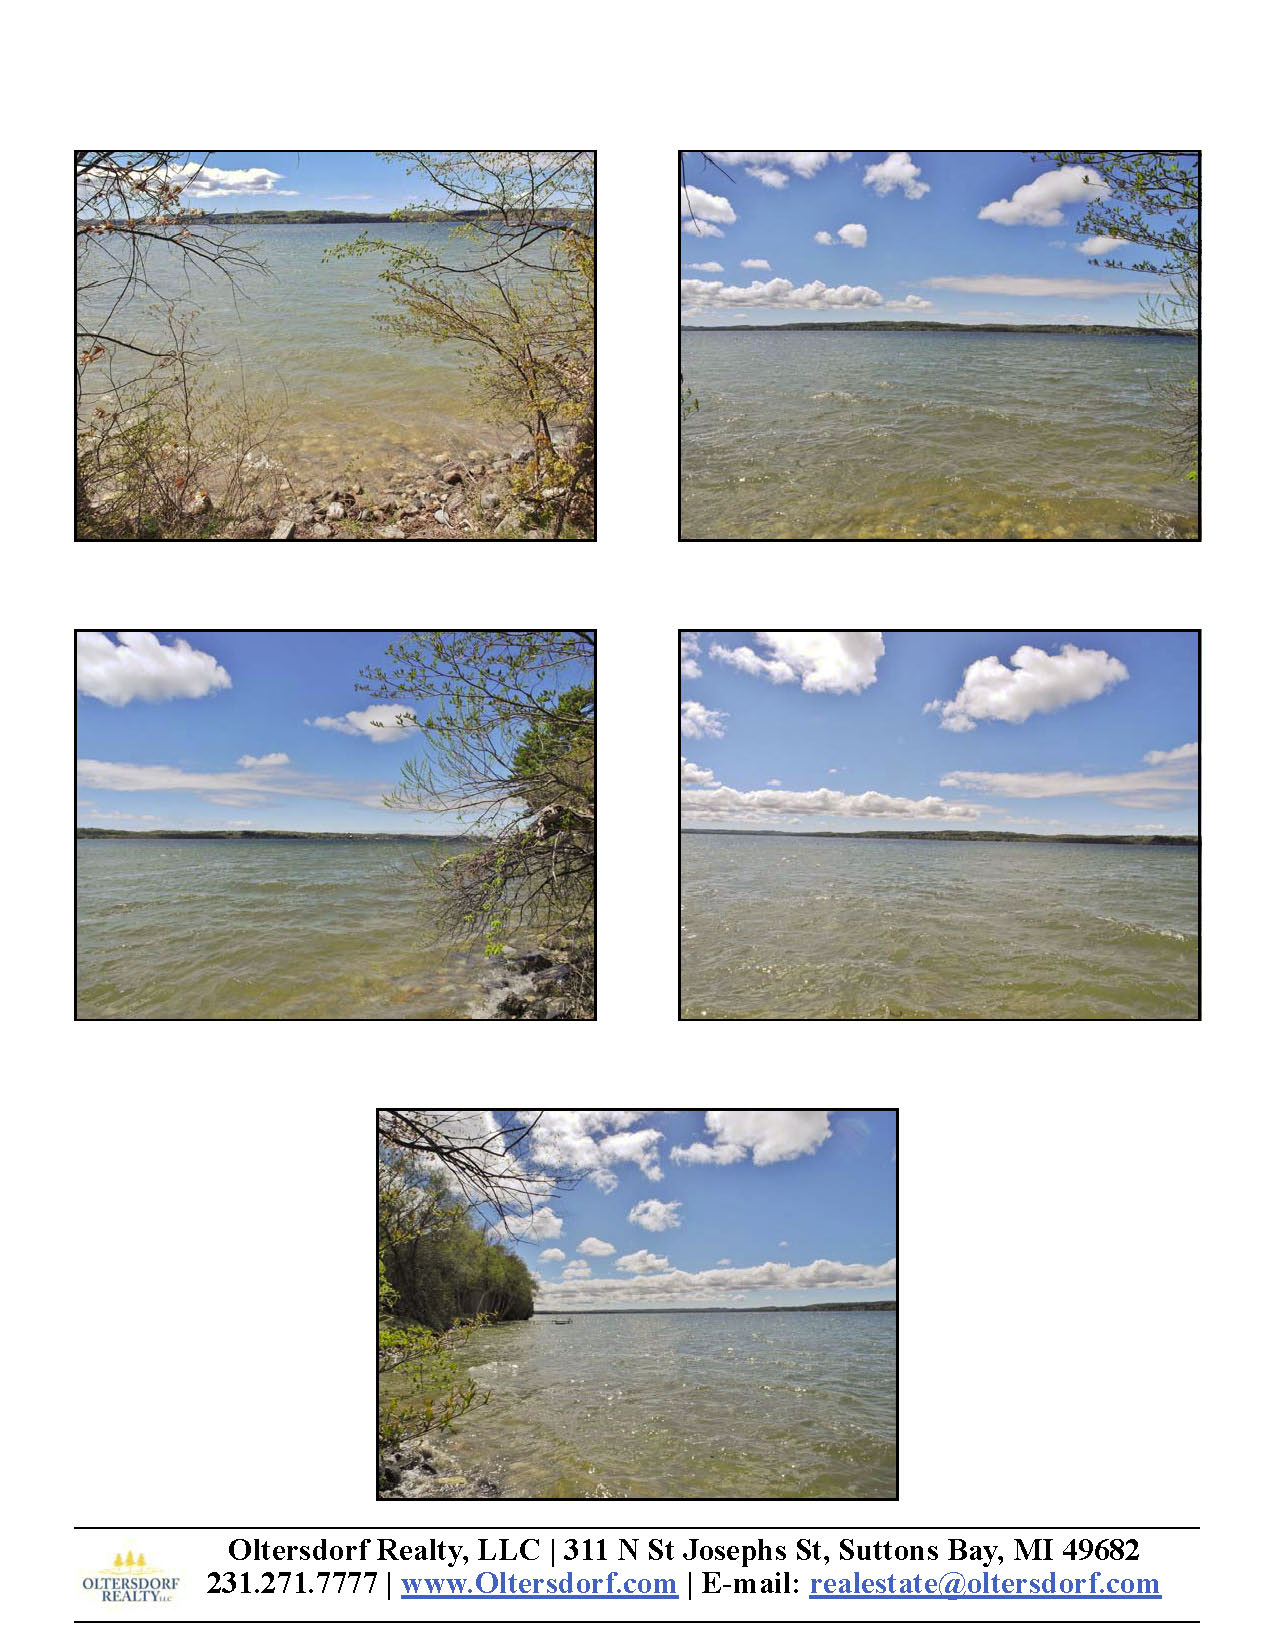 8164 S Lakeview Road, Traverse City, MI – Ranch Home & 100' on Lake Leelanau - For Sale by Oltersdorf Realty LLC - Marketing Packet (2).jpg